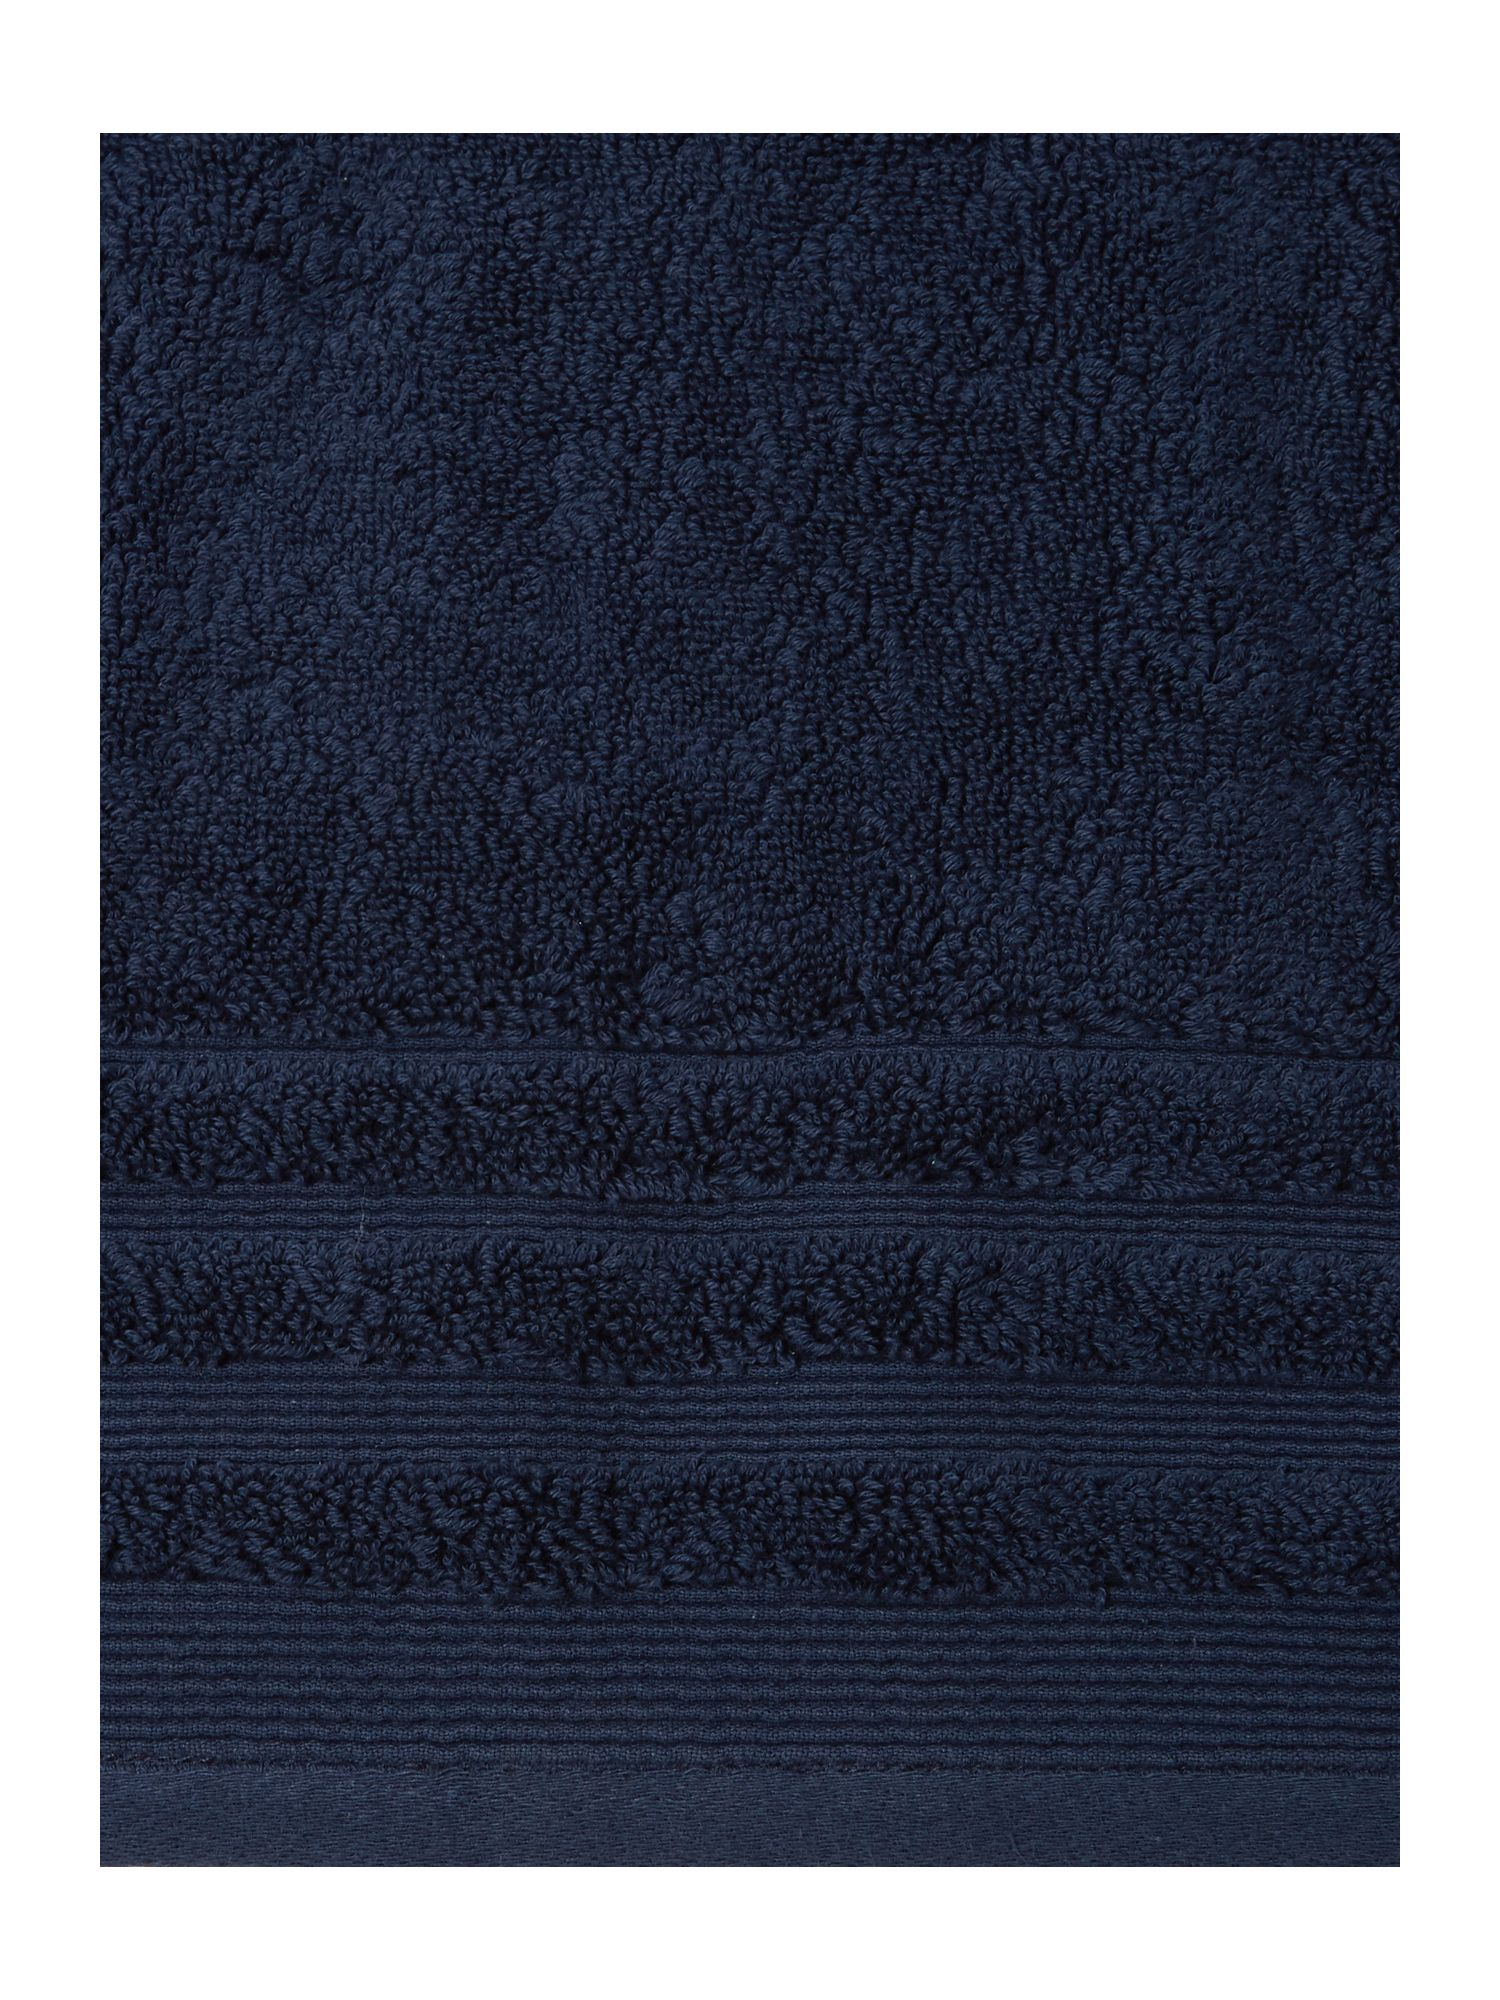 Luxury midnight towels